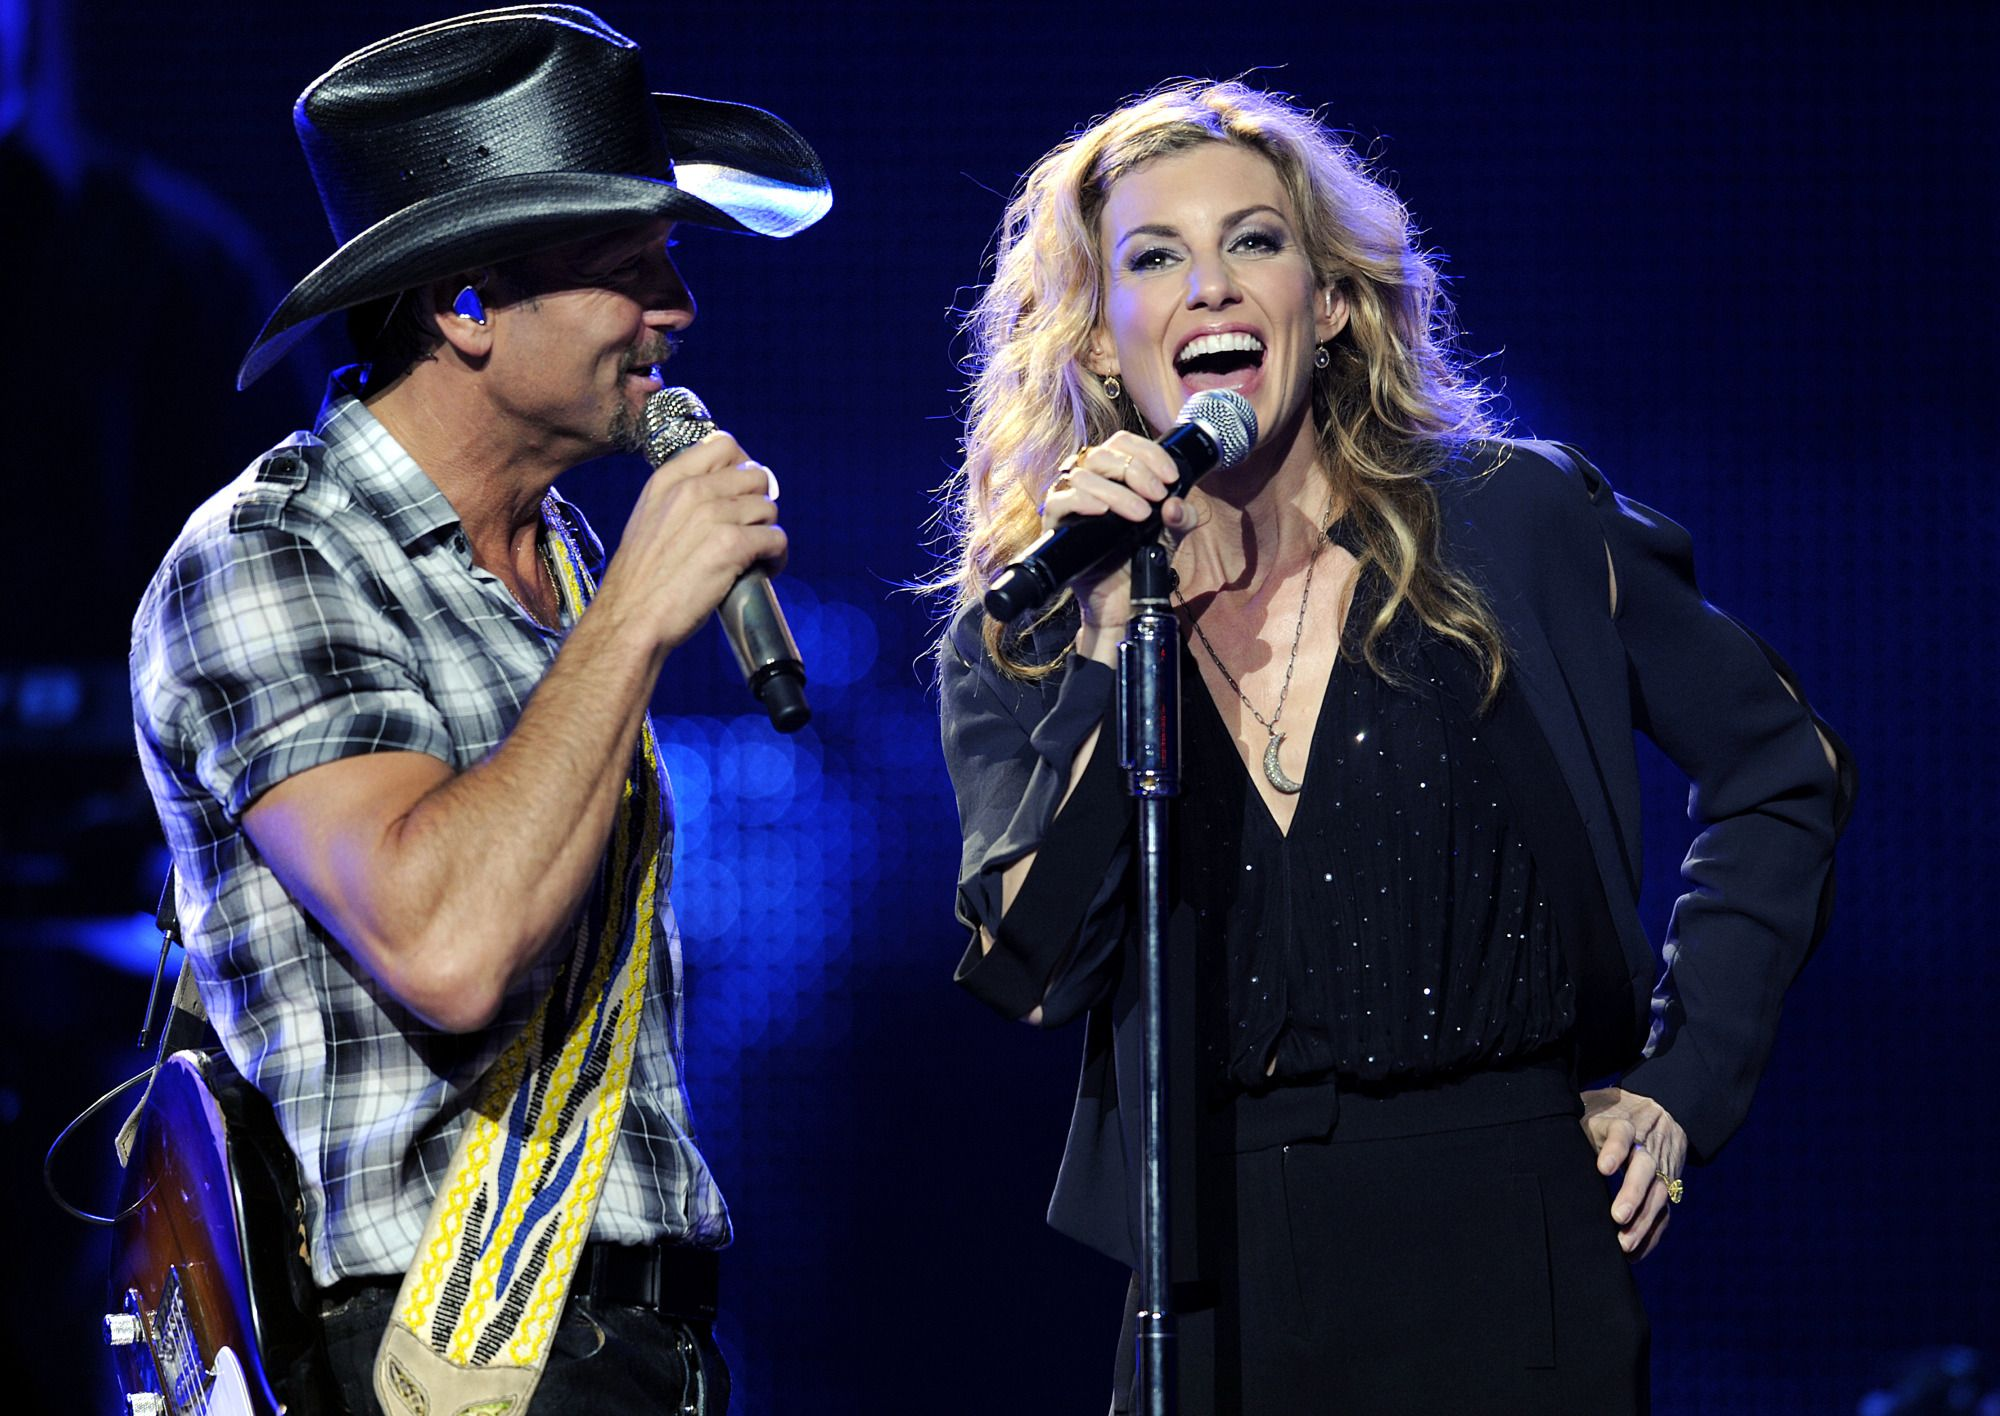 Talk about a power couple! Tim McGraw and Faith Hill won the Nashville Symphony Harmony Award, due to their endless work with promoting music in the Nashville community.